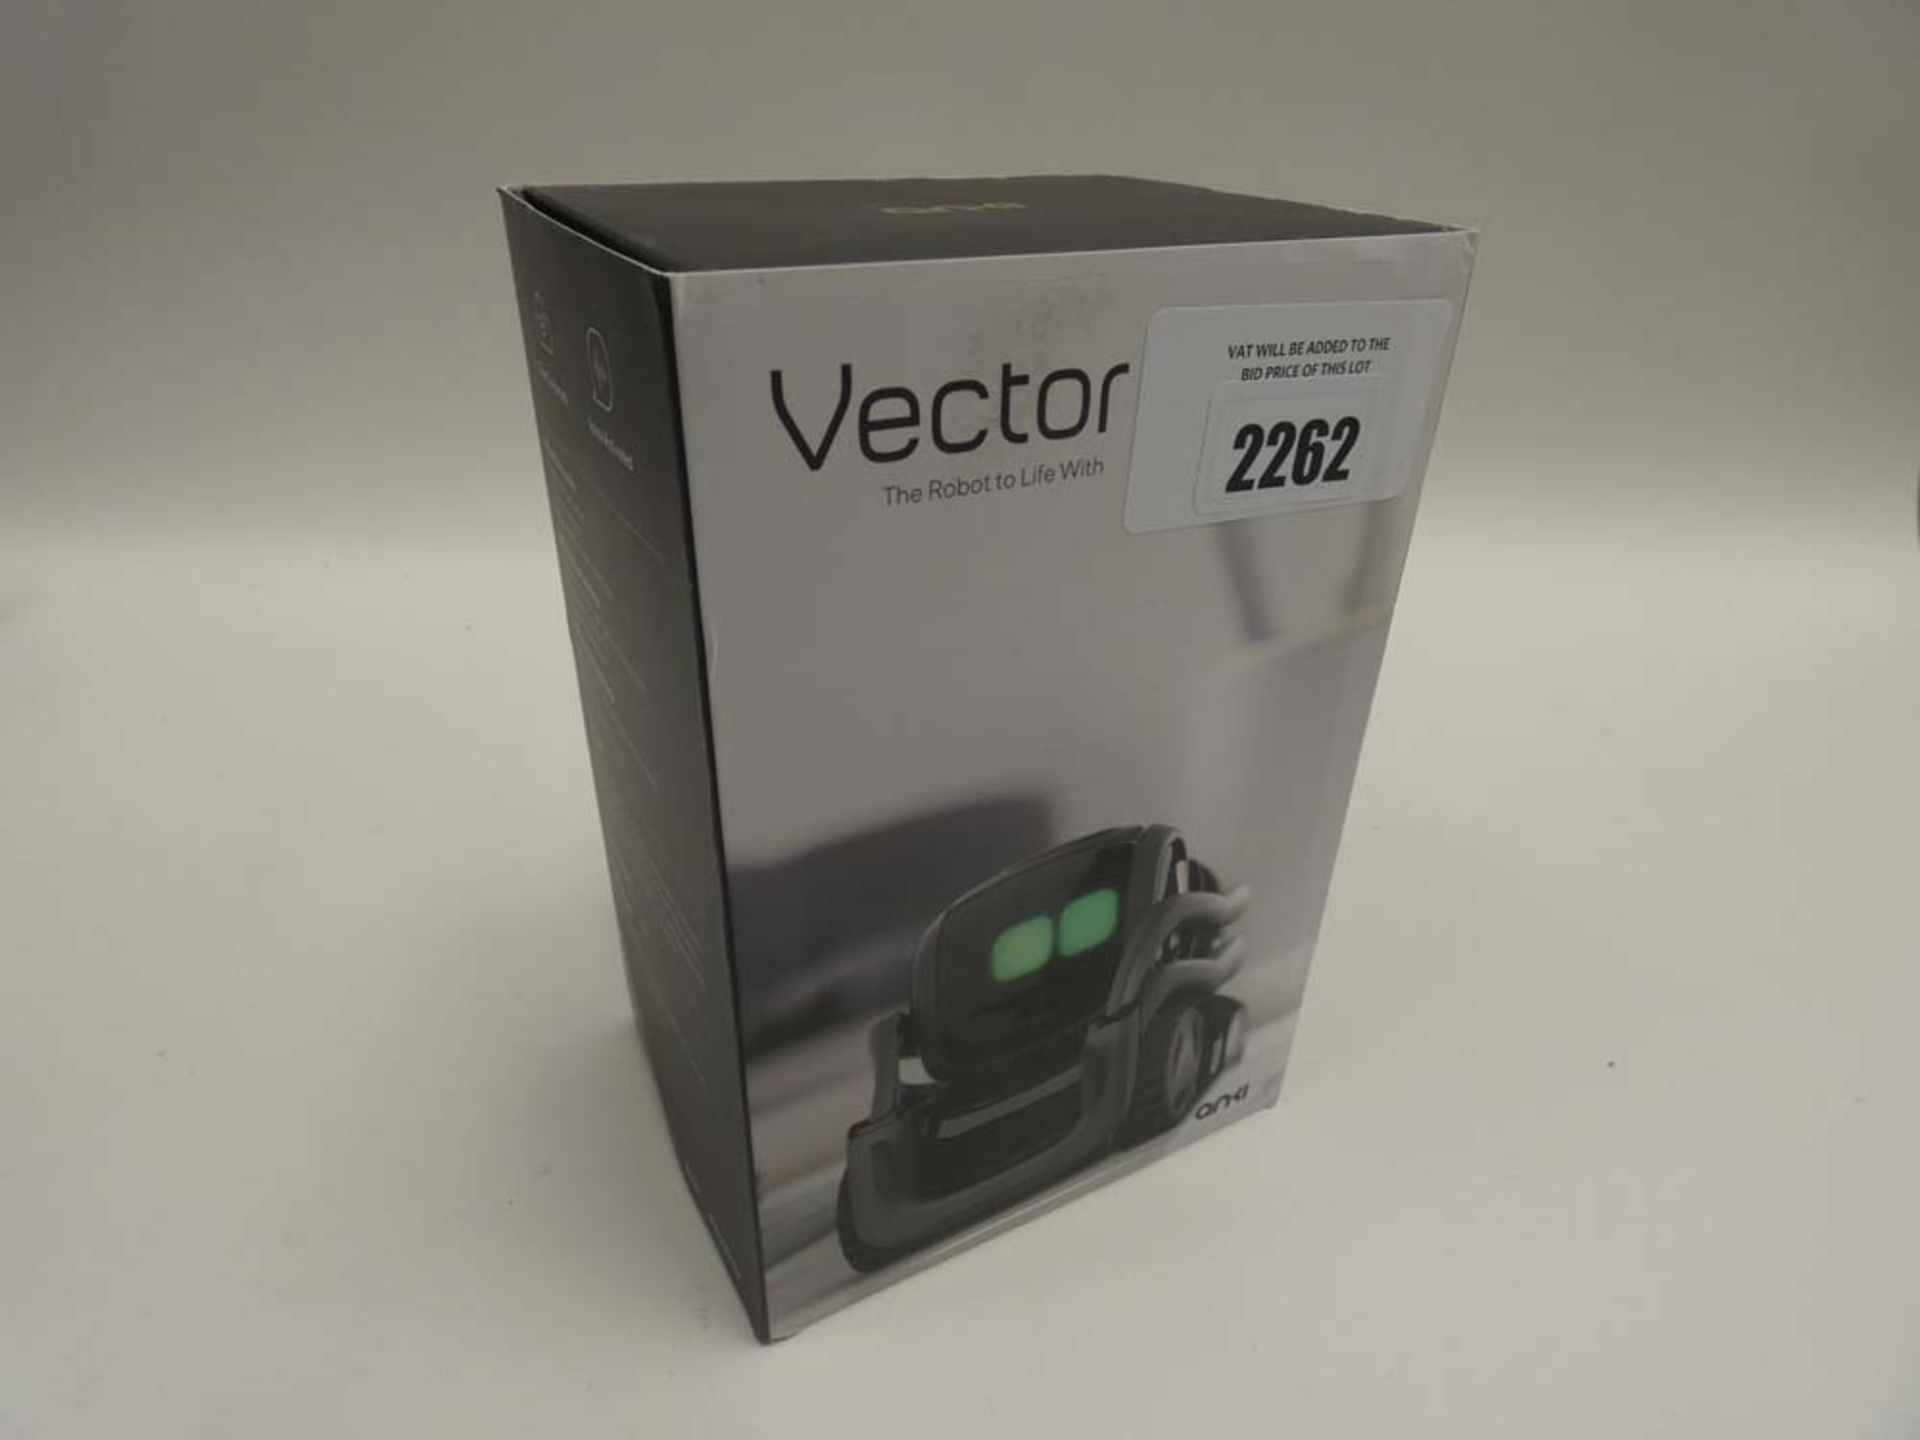 Lot 2262 - Anki Vector companion robot